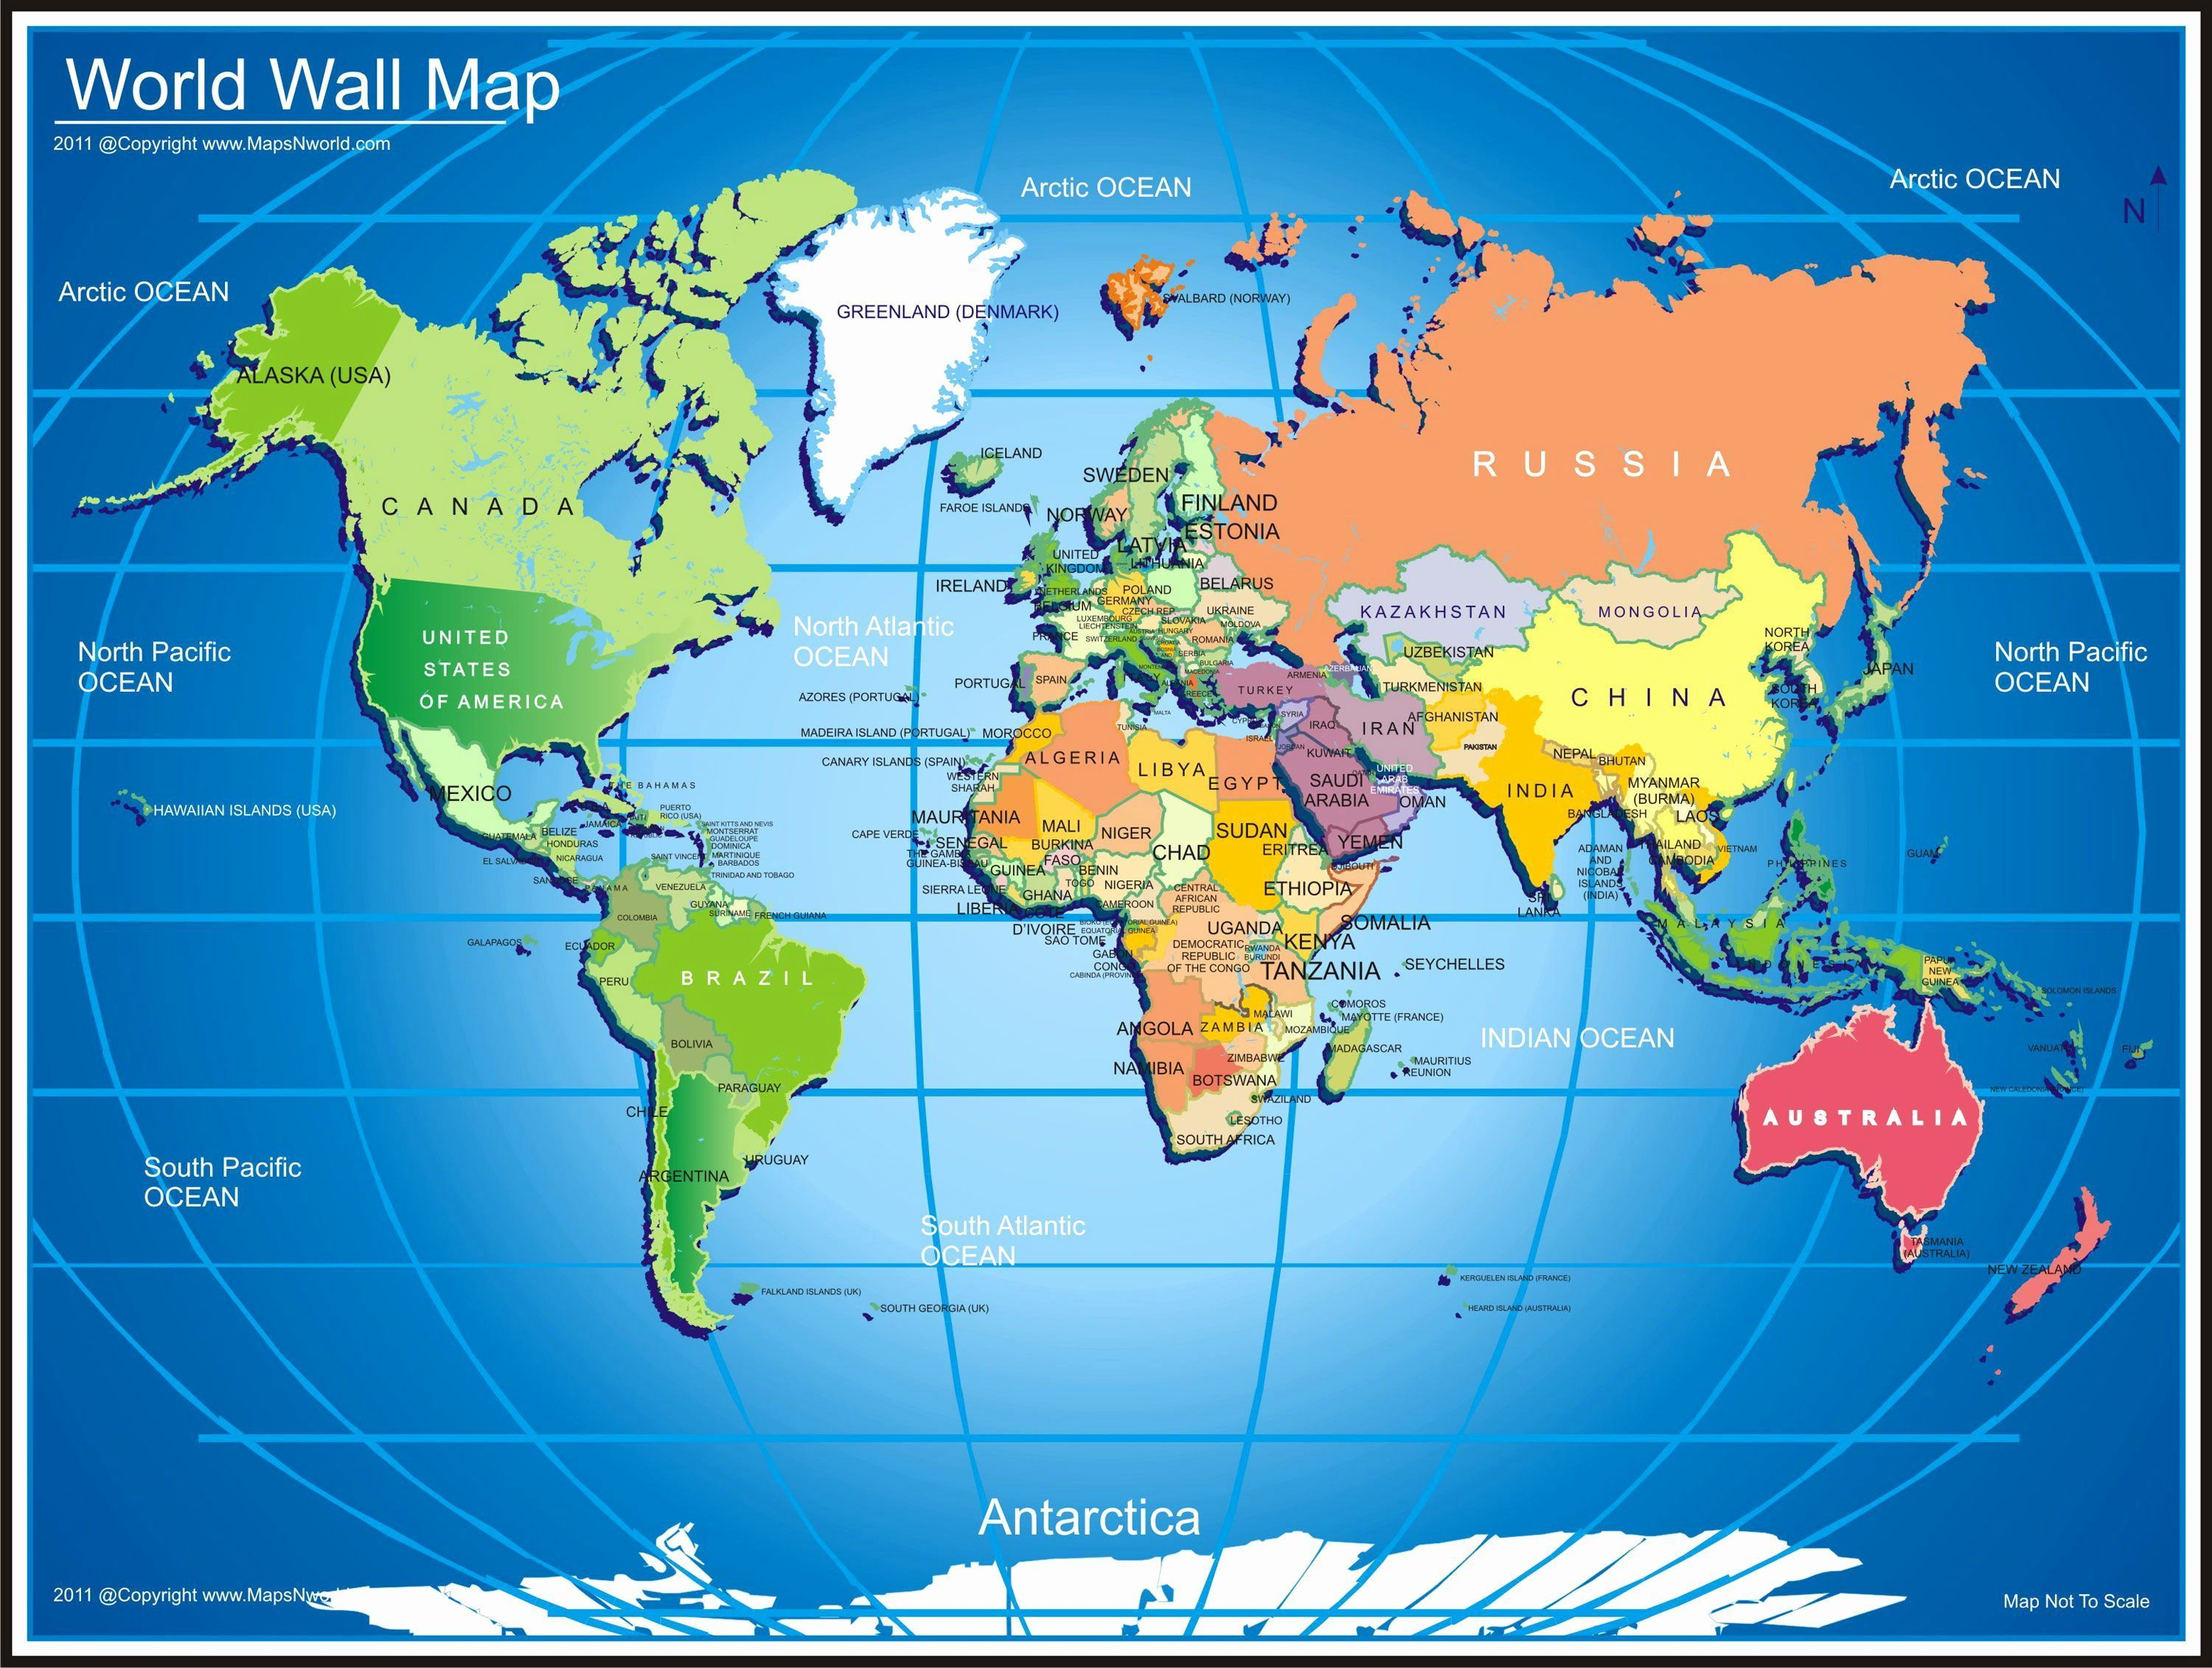 Best World Map Pdf Word Map Pdf High Resolution Map Of World Political Map Area Definition Oceans In World Myanmar Map Wallpaper World Map Hd Images #worldmapmural Best World Map Pdf Word Map Pdf High Resolution Map Of World Political Map Area Definition Oceans In World Myanmar Map Wallpaper World Map Hd Images #worldmapmural Best World Map Pdf Word Map Pdf High Resolution Map Of World Political Map Area Definition Oceans In World Myanmar Map Wallpaper World Map Hd Images #worldmapmural Best Wor #worldmapmural